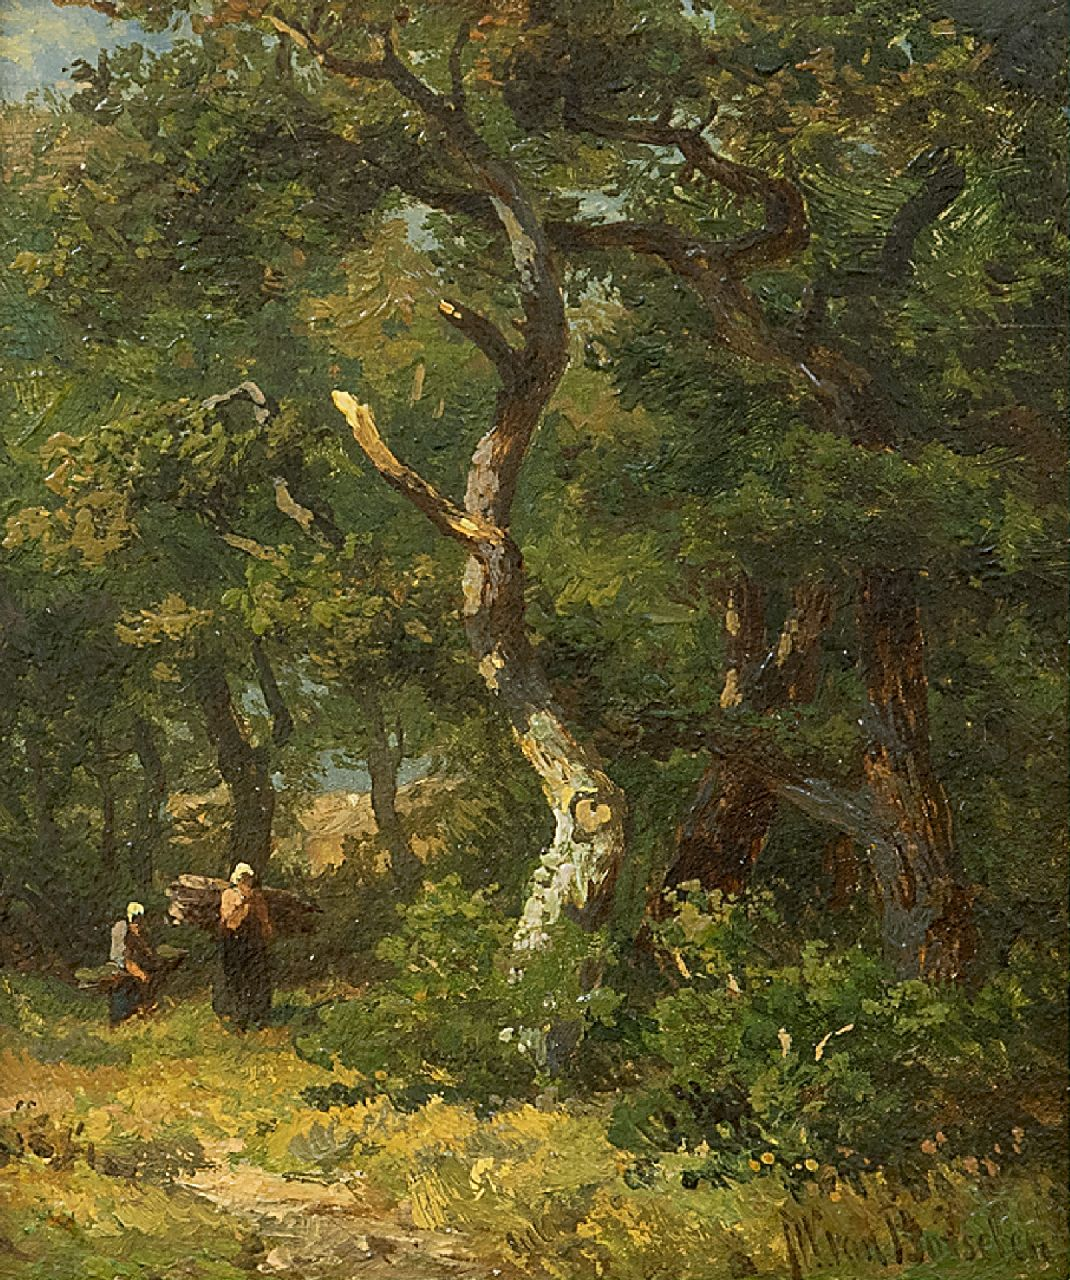 Borselen J.W. van | Jan Willem van Borselen | Paintings offered for sale | Forest, oil on panel 11.0 x 9.0 cm